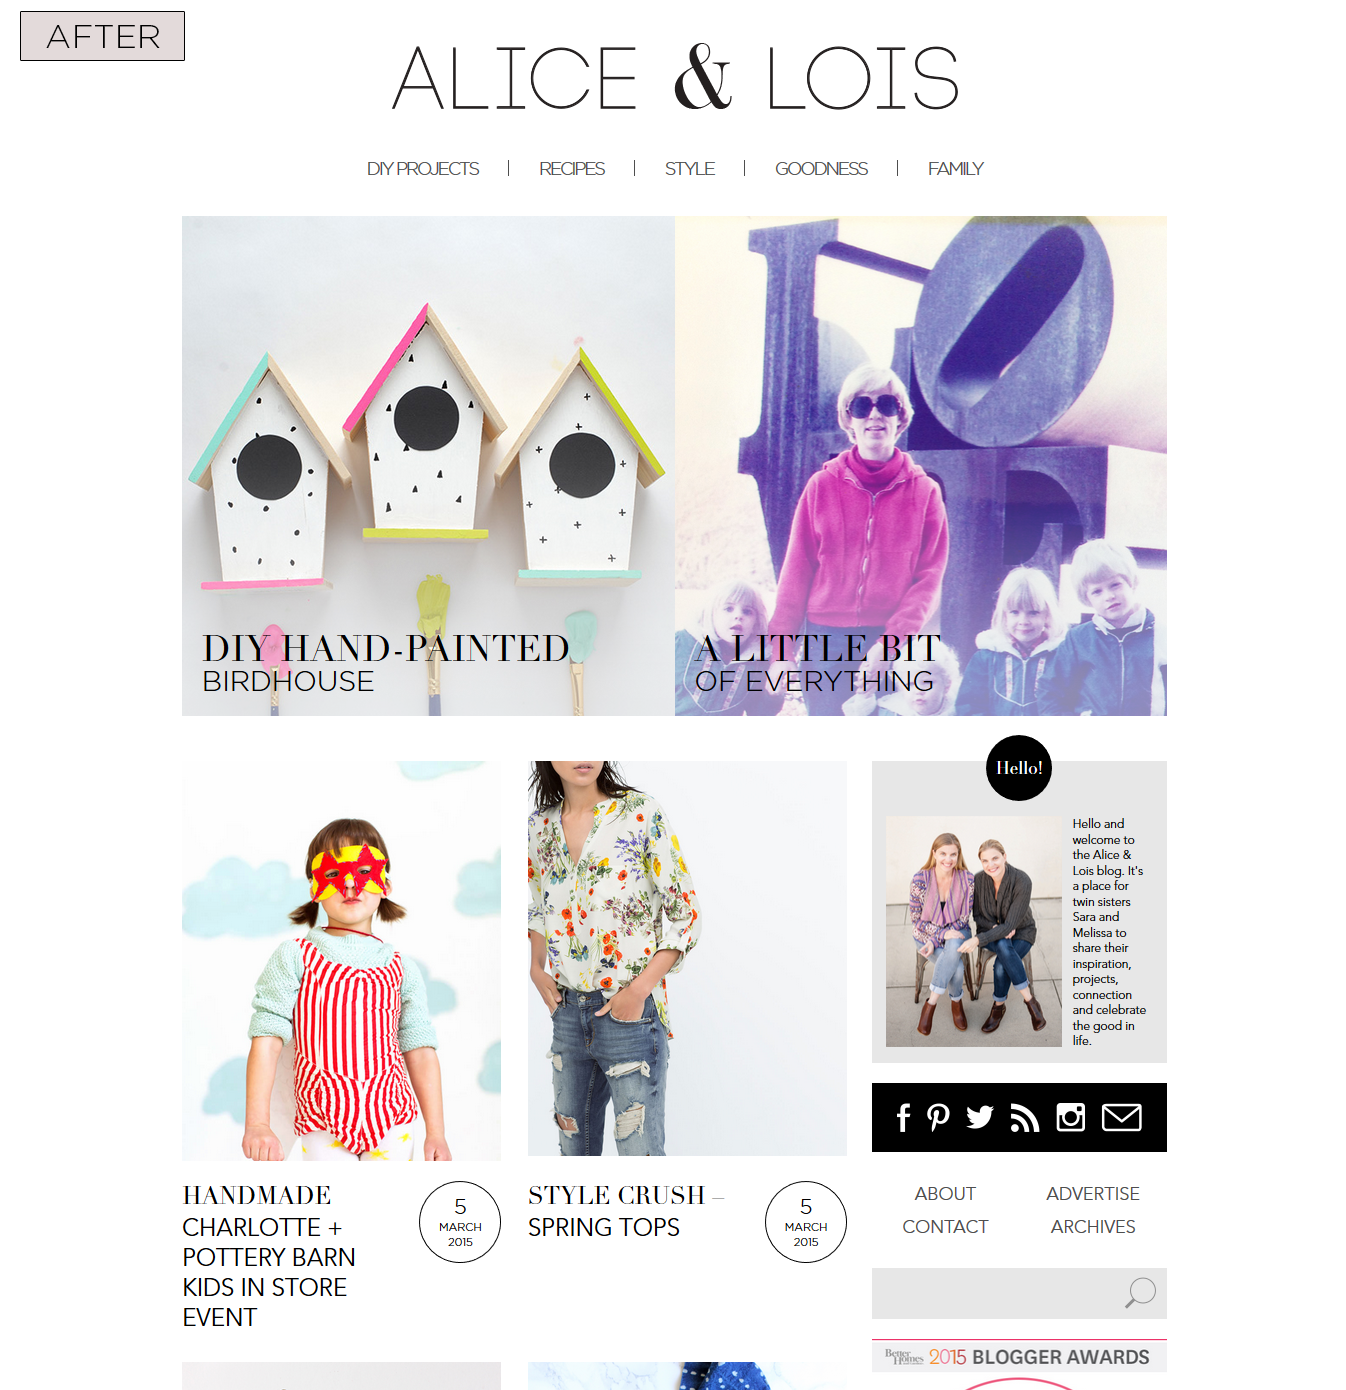 Alice & Lois Homepage - After